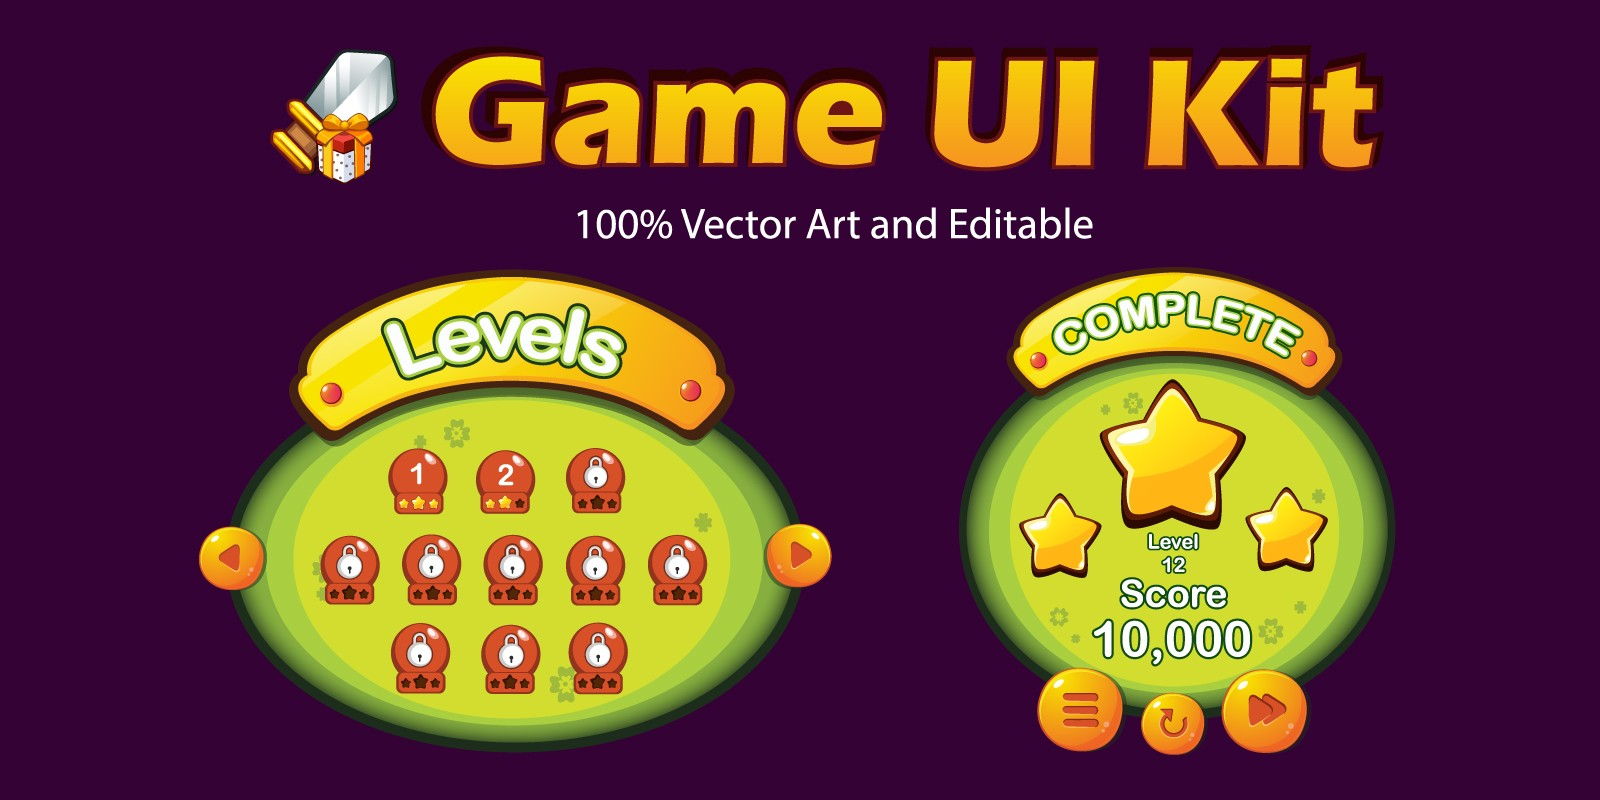 Game UI Kit